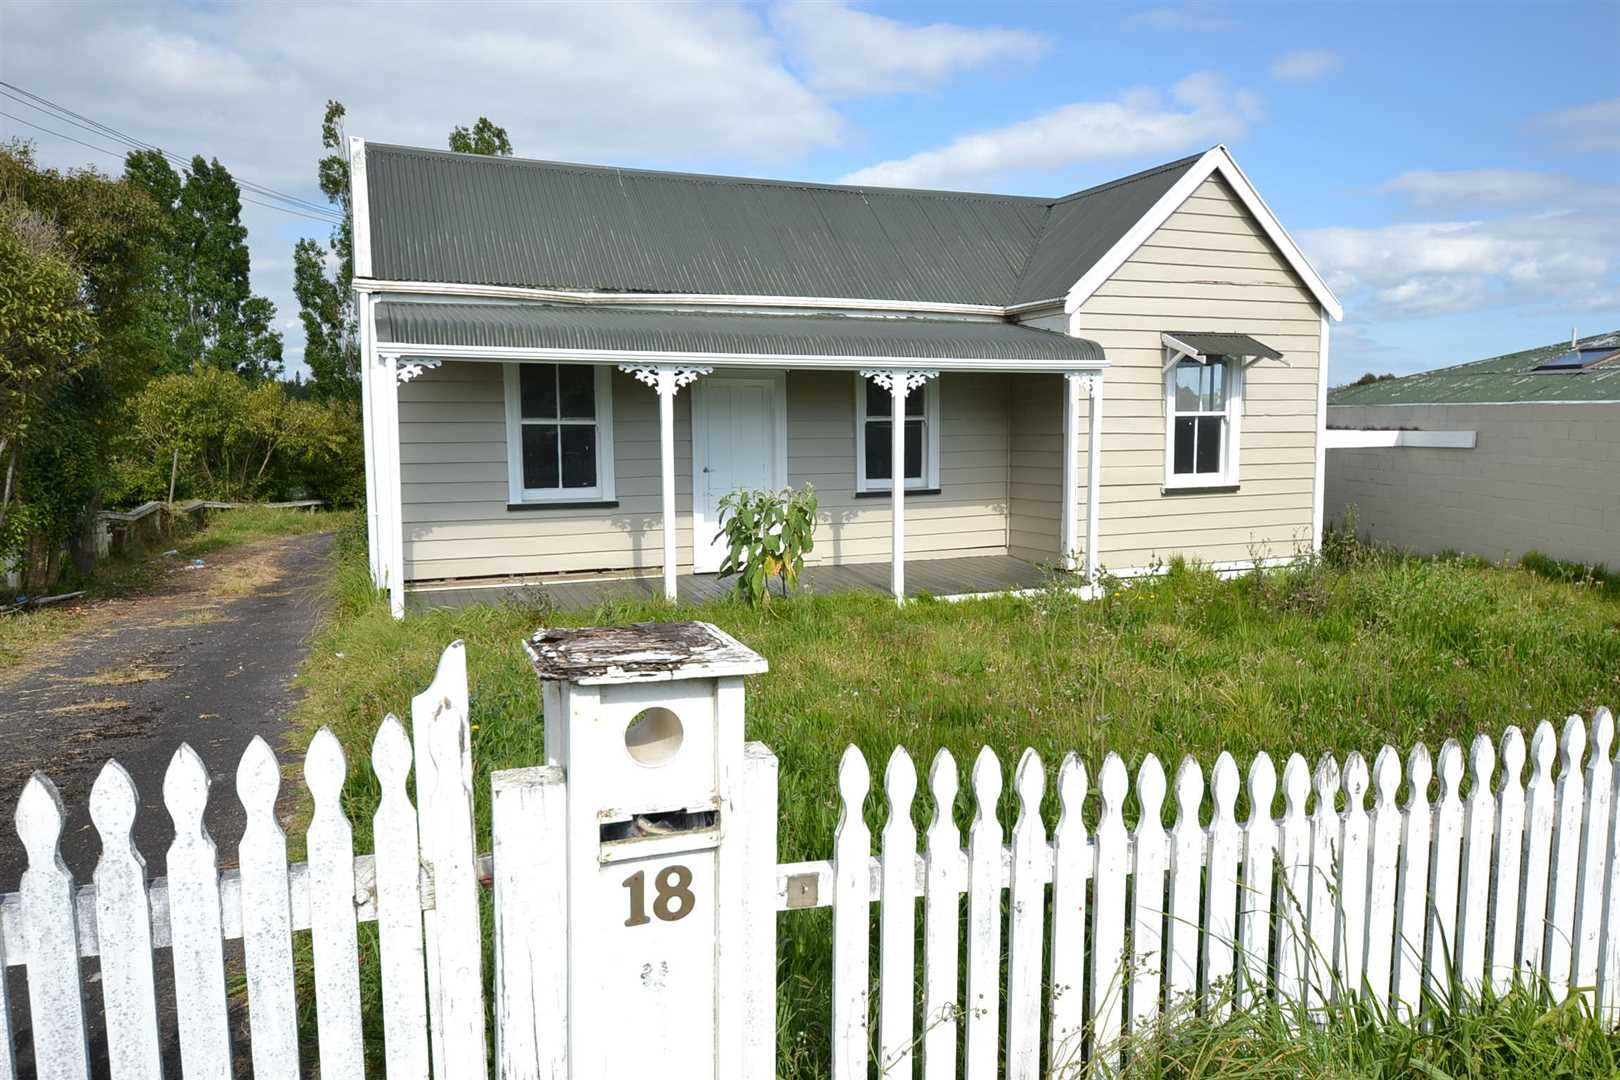 Affordable Entry Level Home or Investment